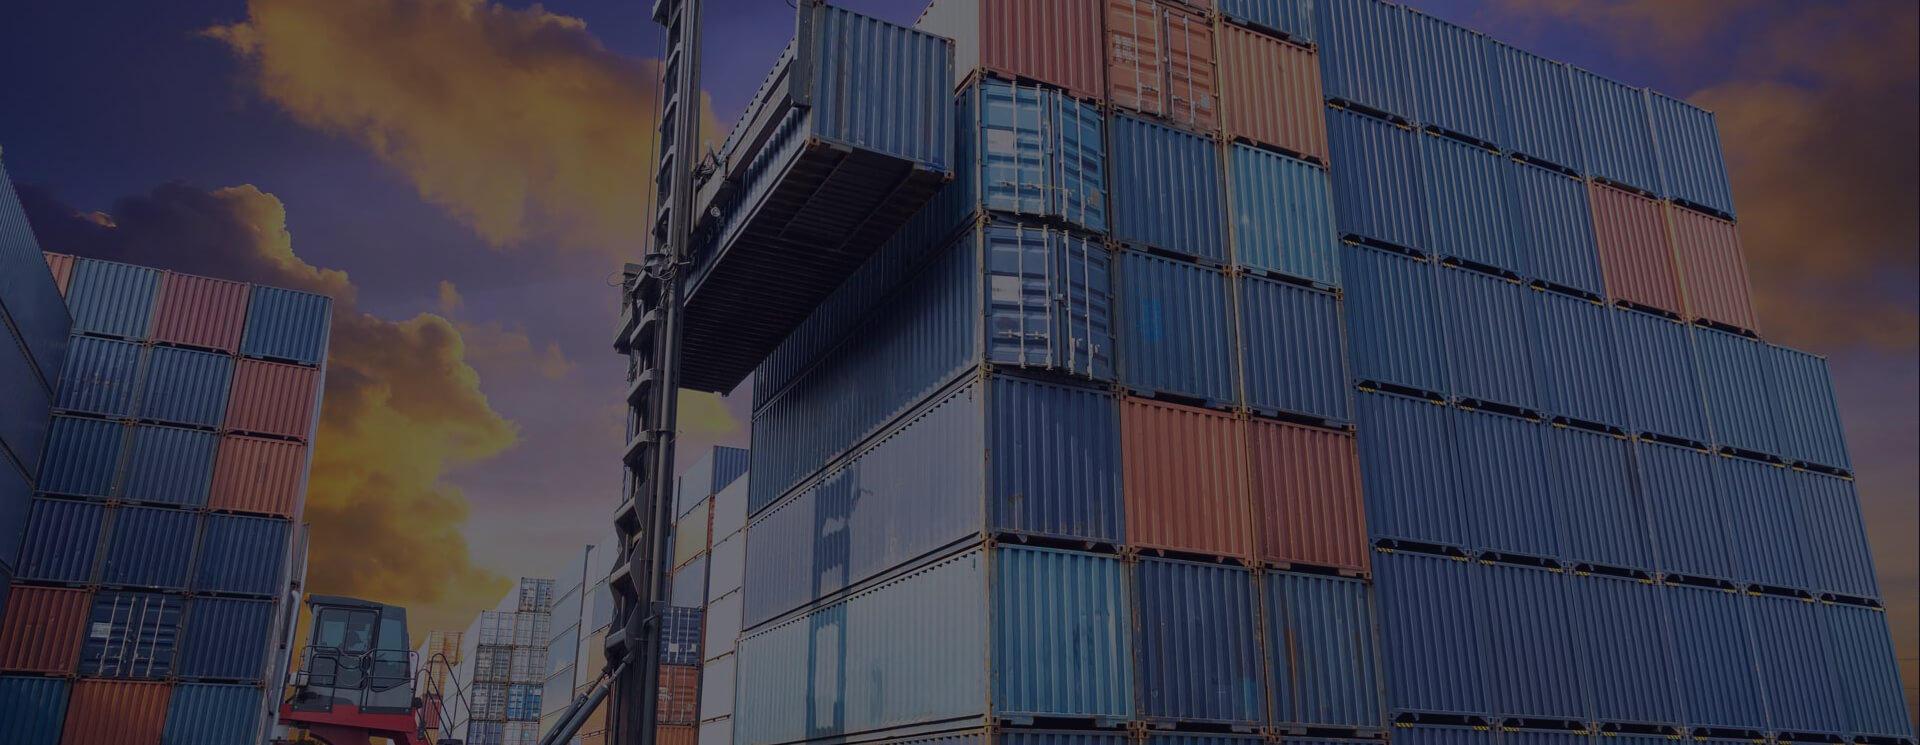 Sati Trans - International Freight Forwarding